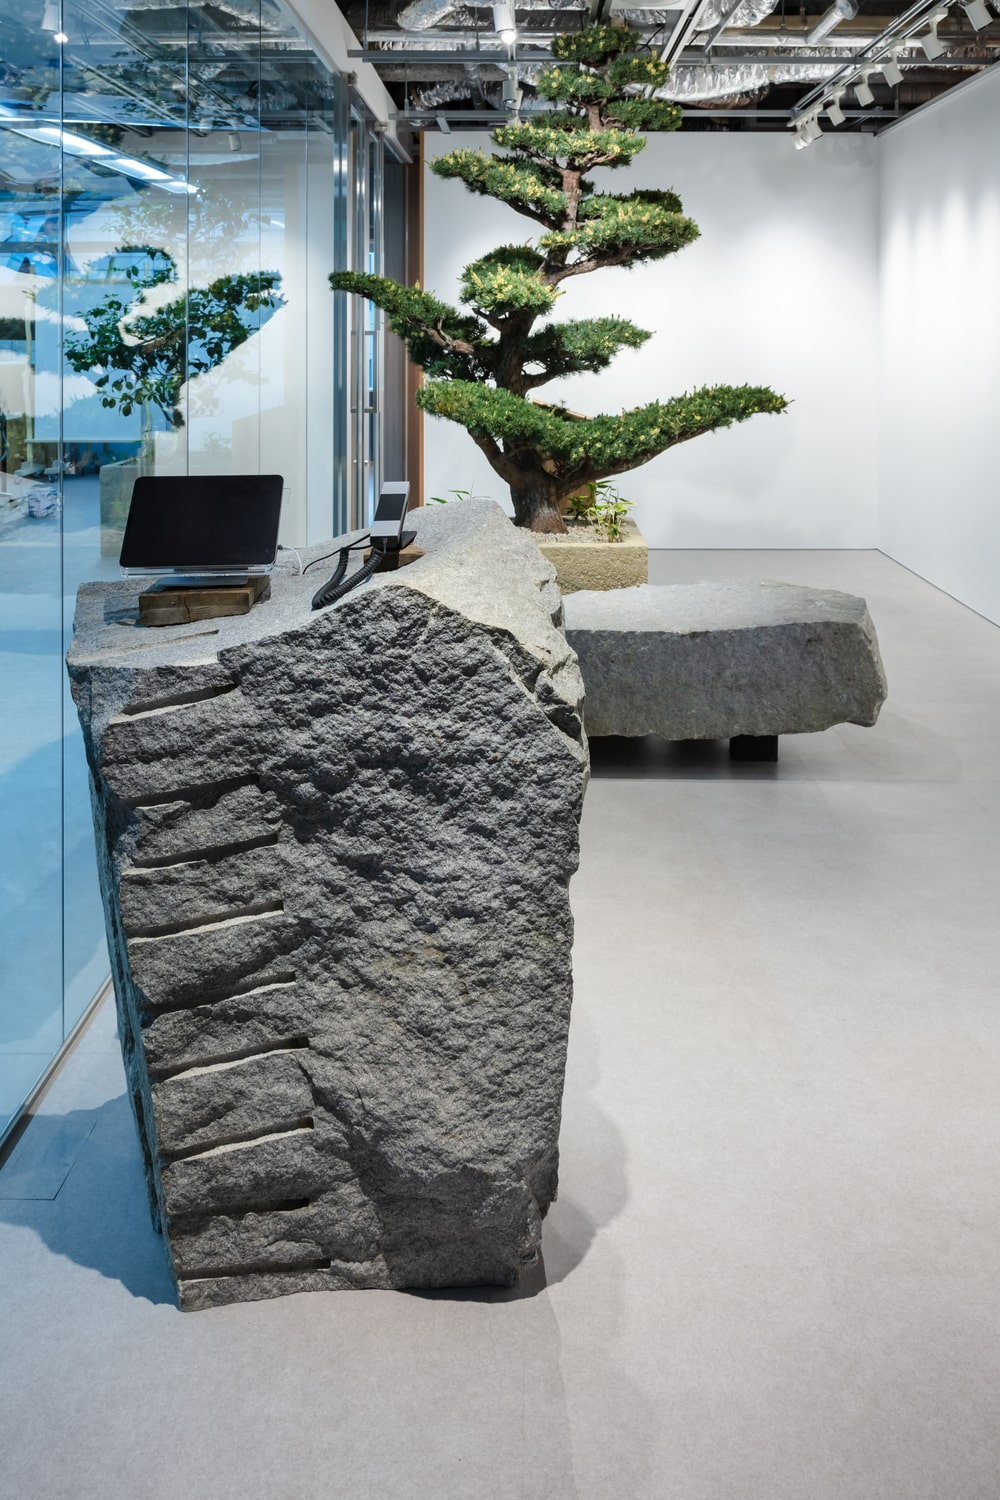 This is a close look at one of the decorative rocks by the glass wall with a textured look.